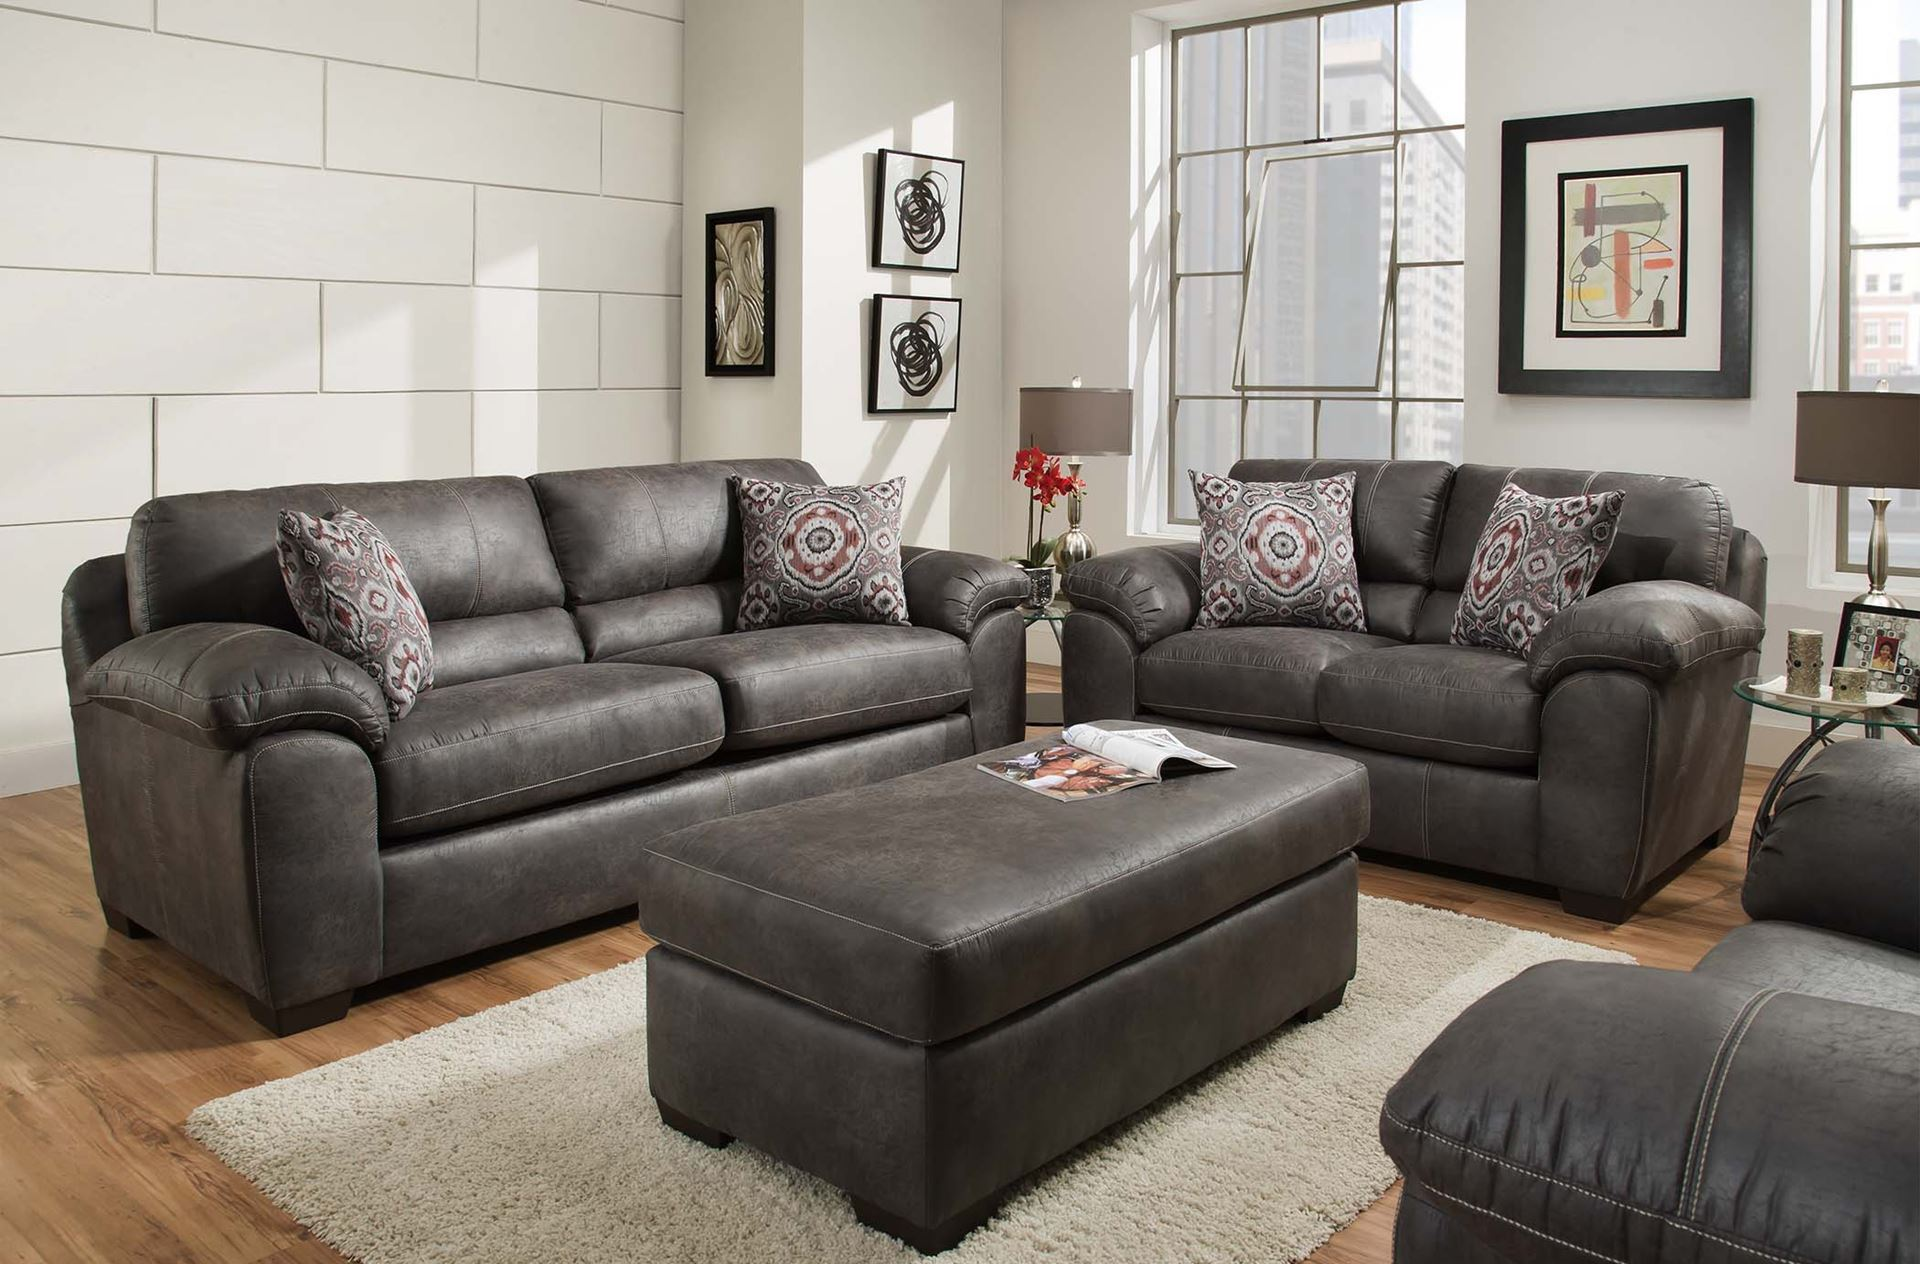 Picture of: Santa Fe Gray Sofa And Loveseat 5400 Only 1 699 00 Houston Furniture Store Where Low Prices Live